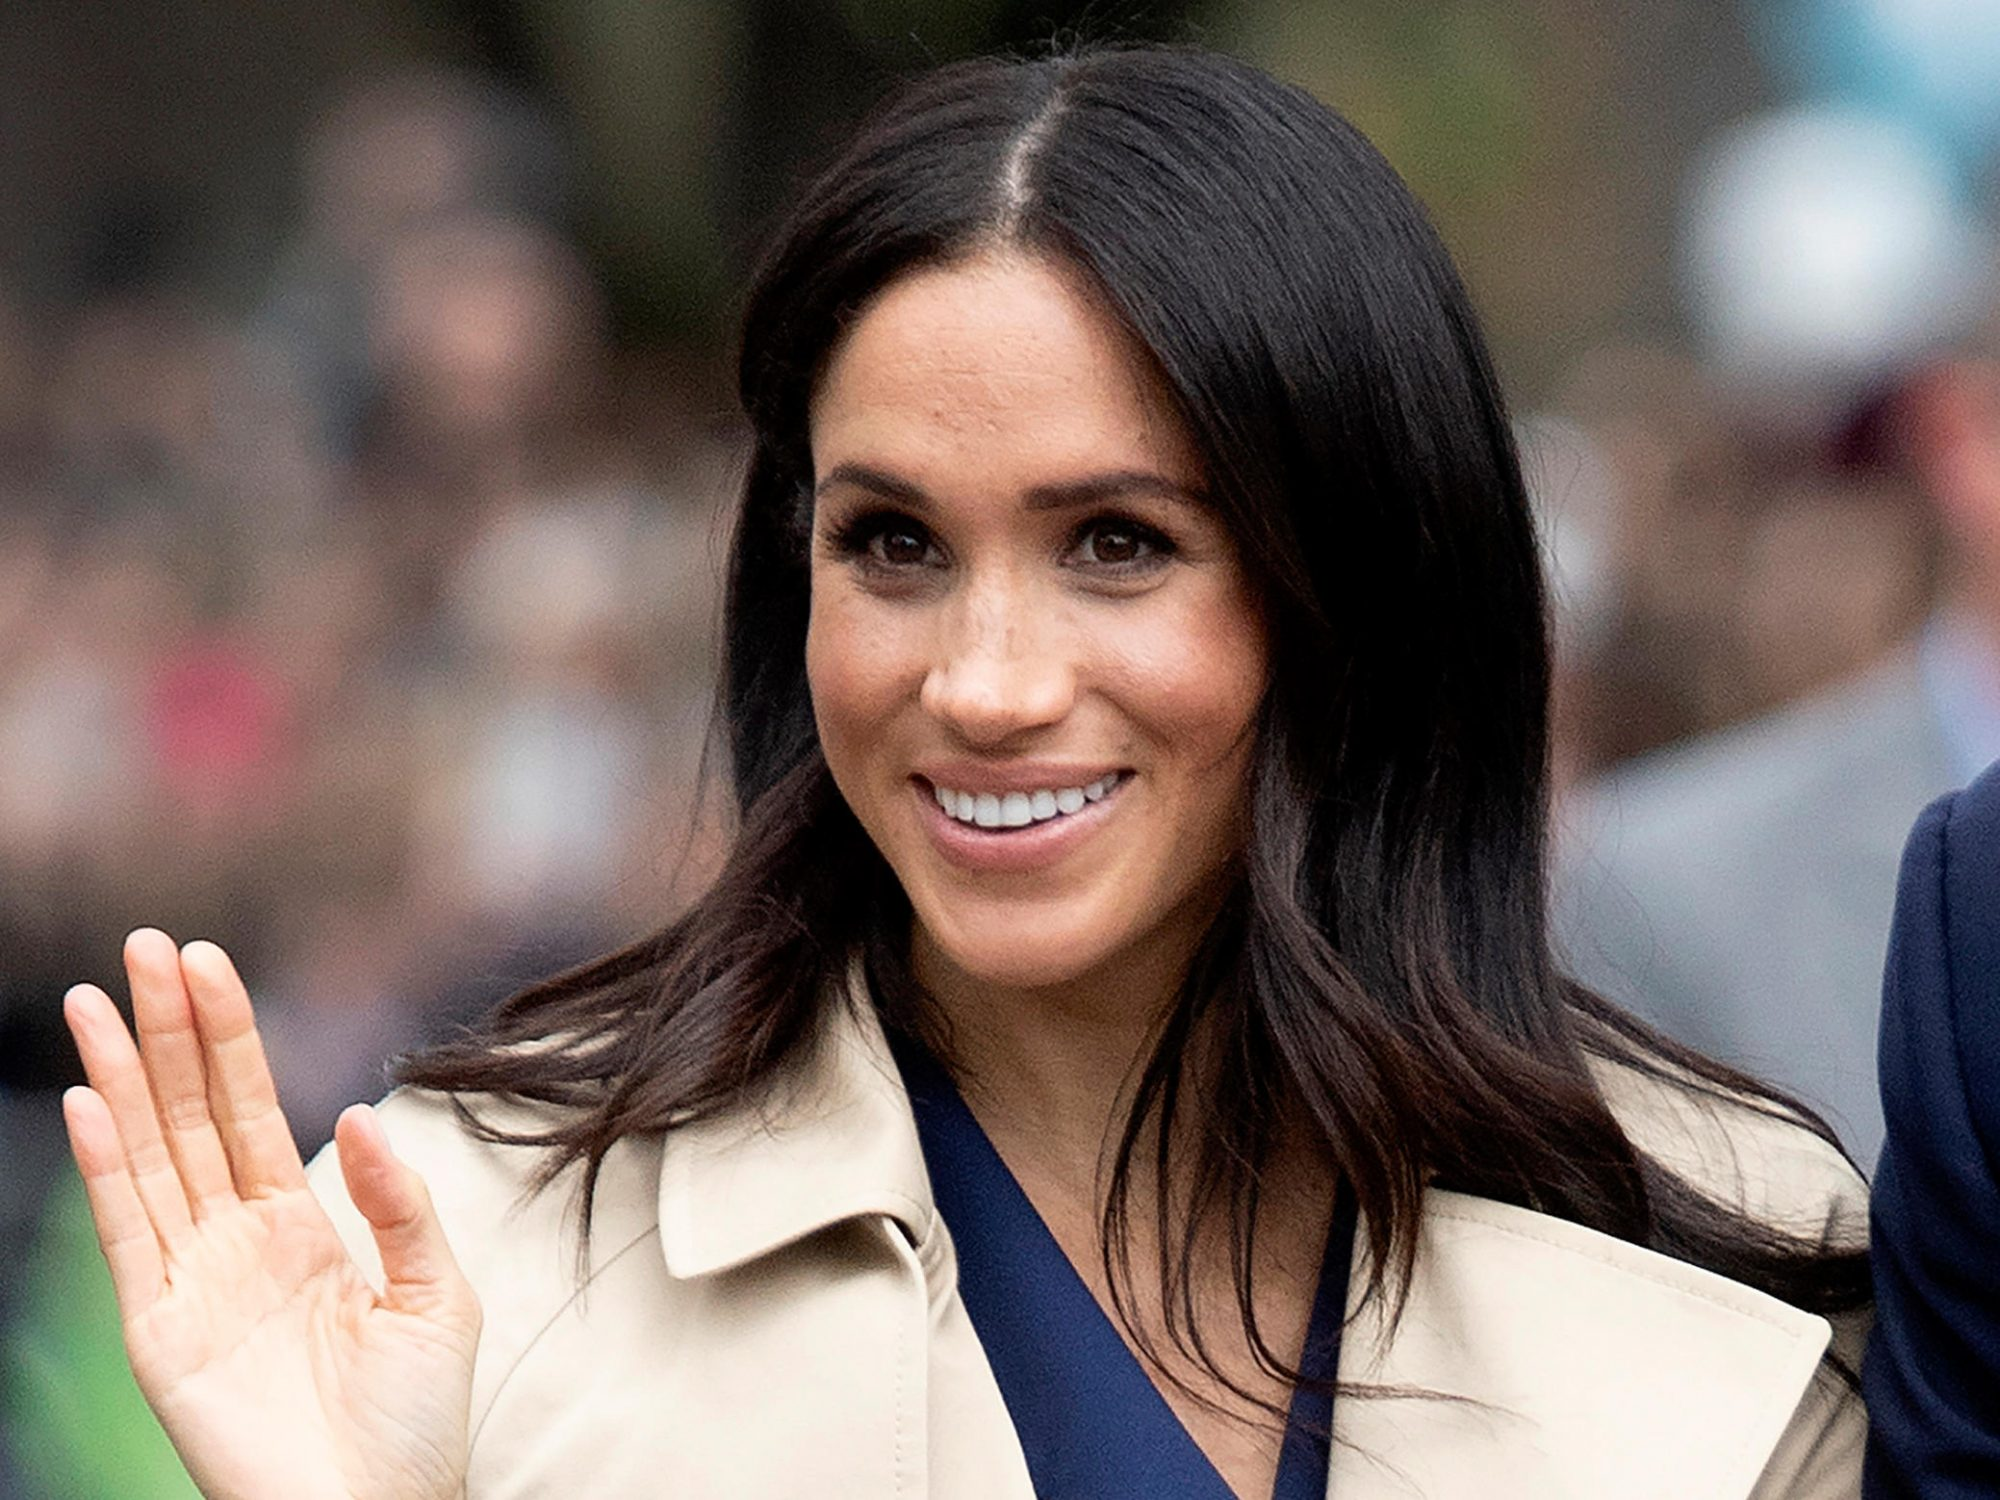 Meghan Markle Wore a Necklace Made From Pasta for the Sweetest Reason